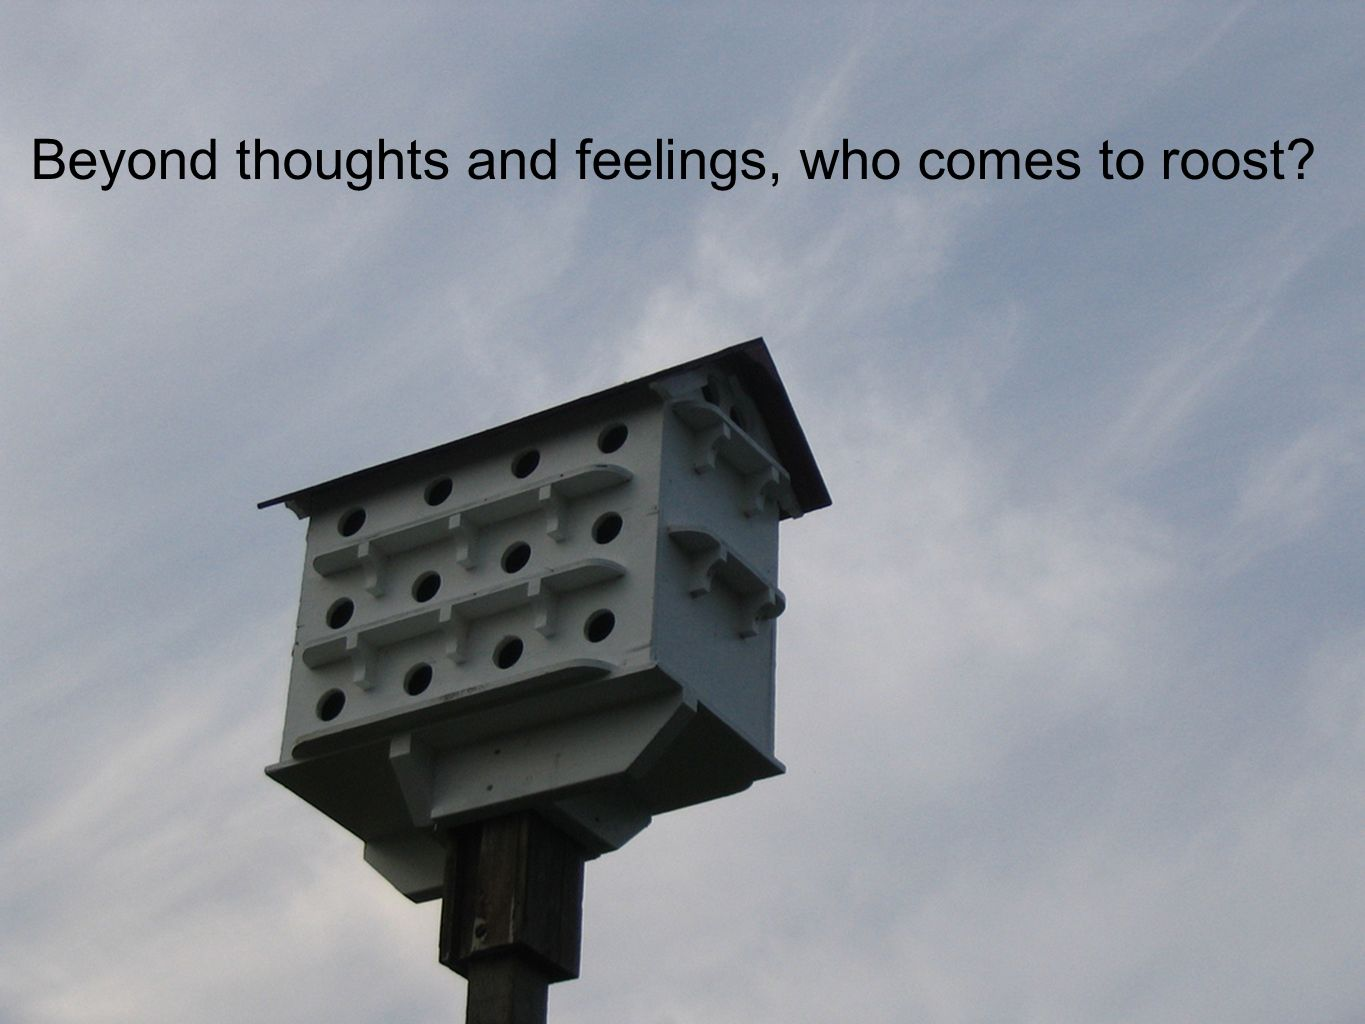 Beyond thoughts and feelings, who comes to roost